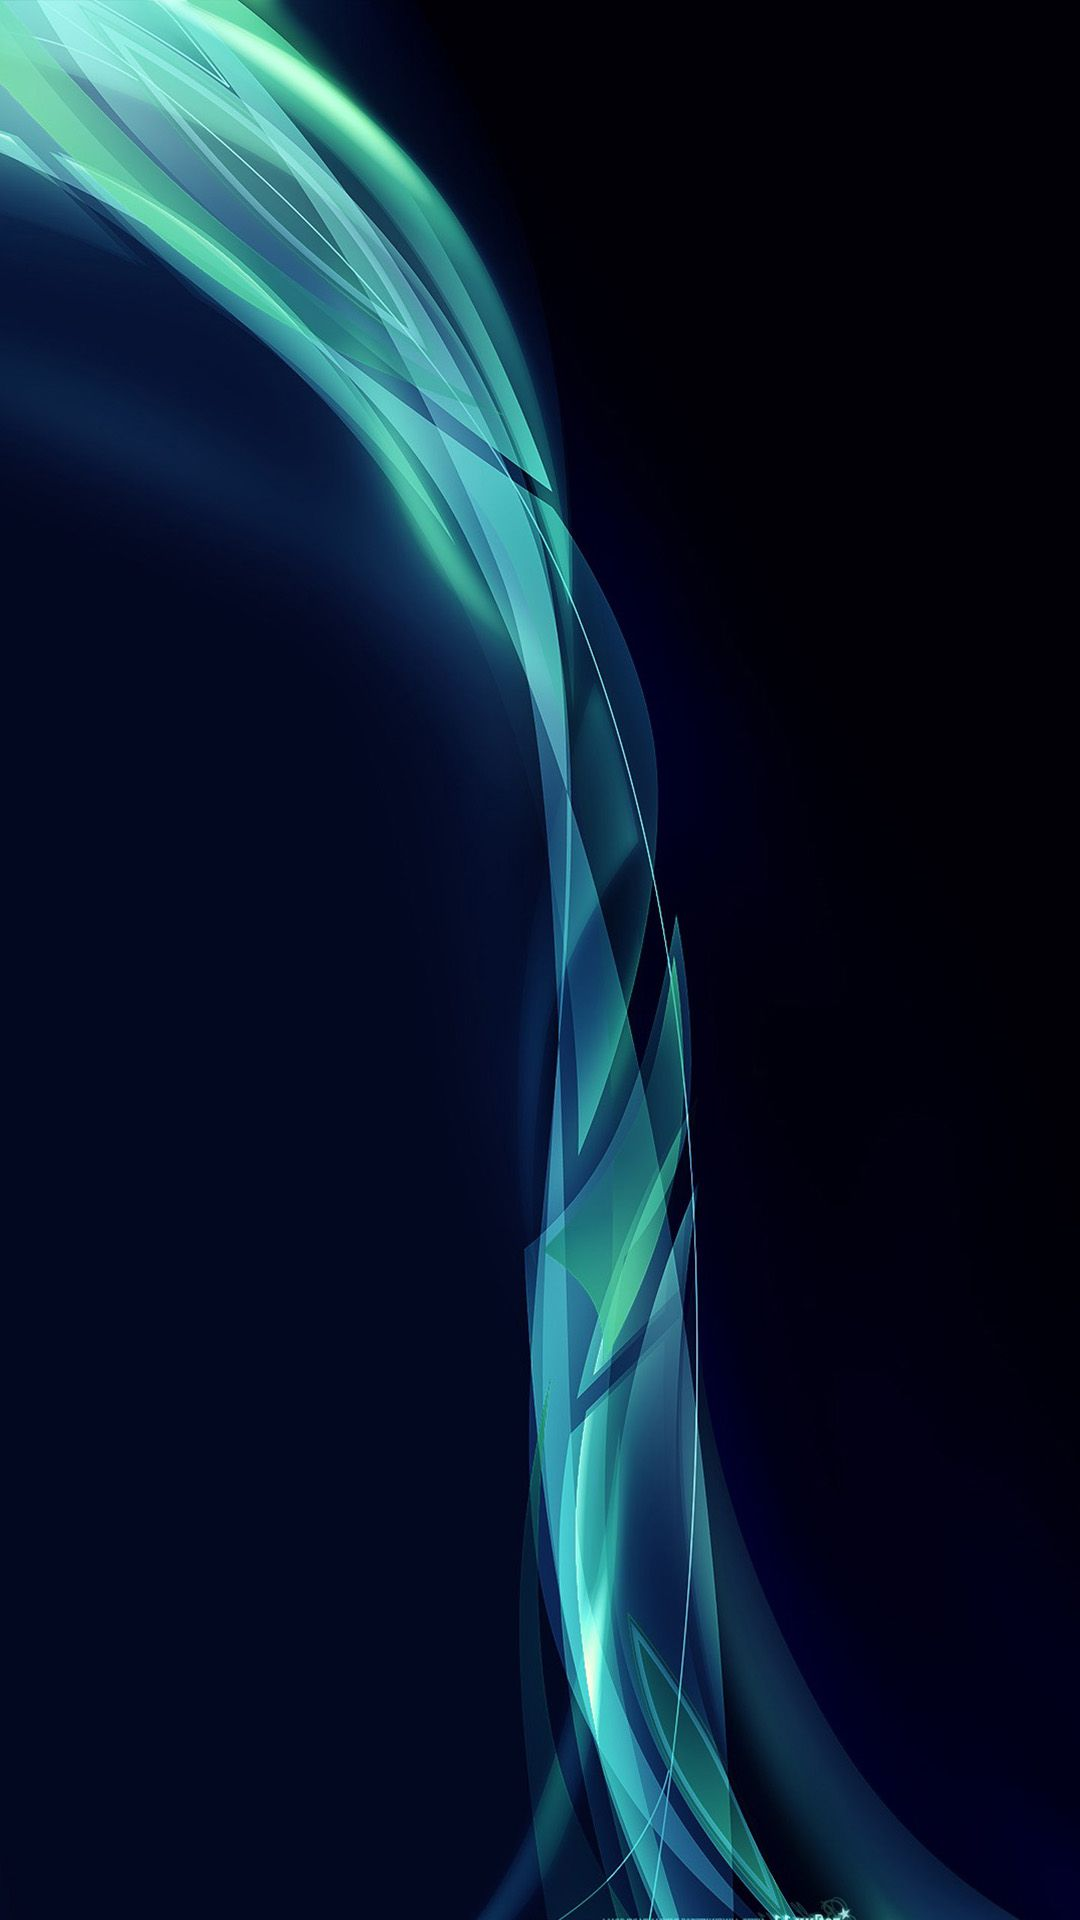 Click image for larger version  Name:Samsung-Galaxy-S6-Wallpapers-Texture-13.jpg Views:352 Size:99.5 KB ID:3709176